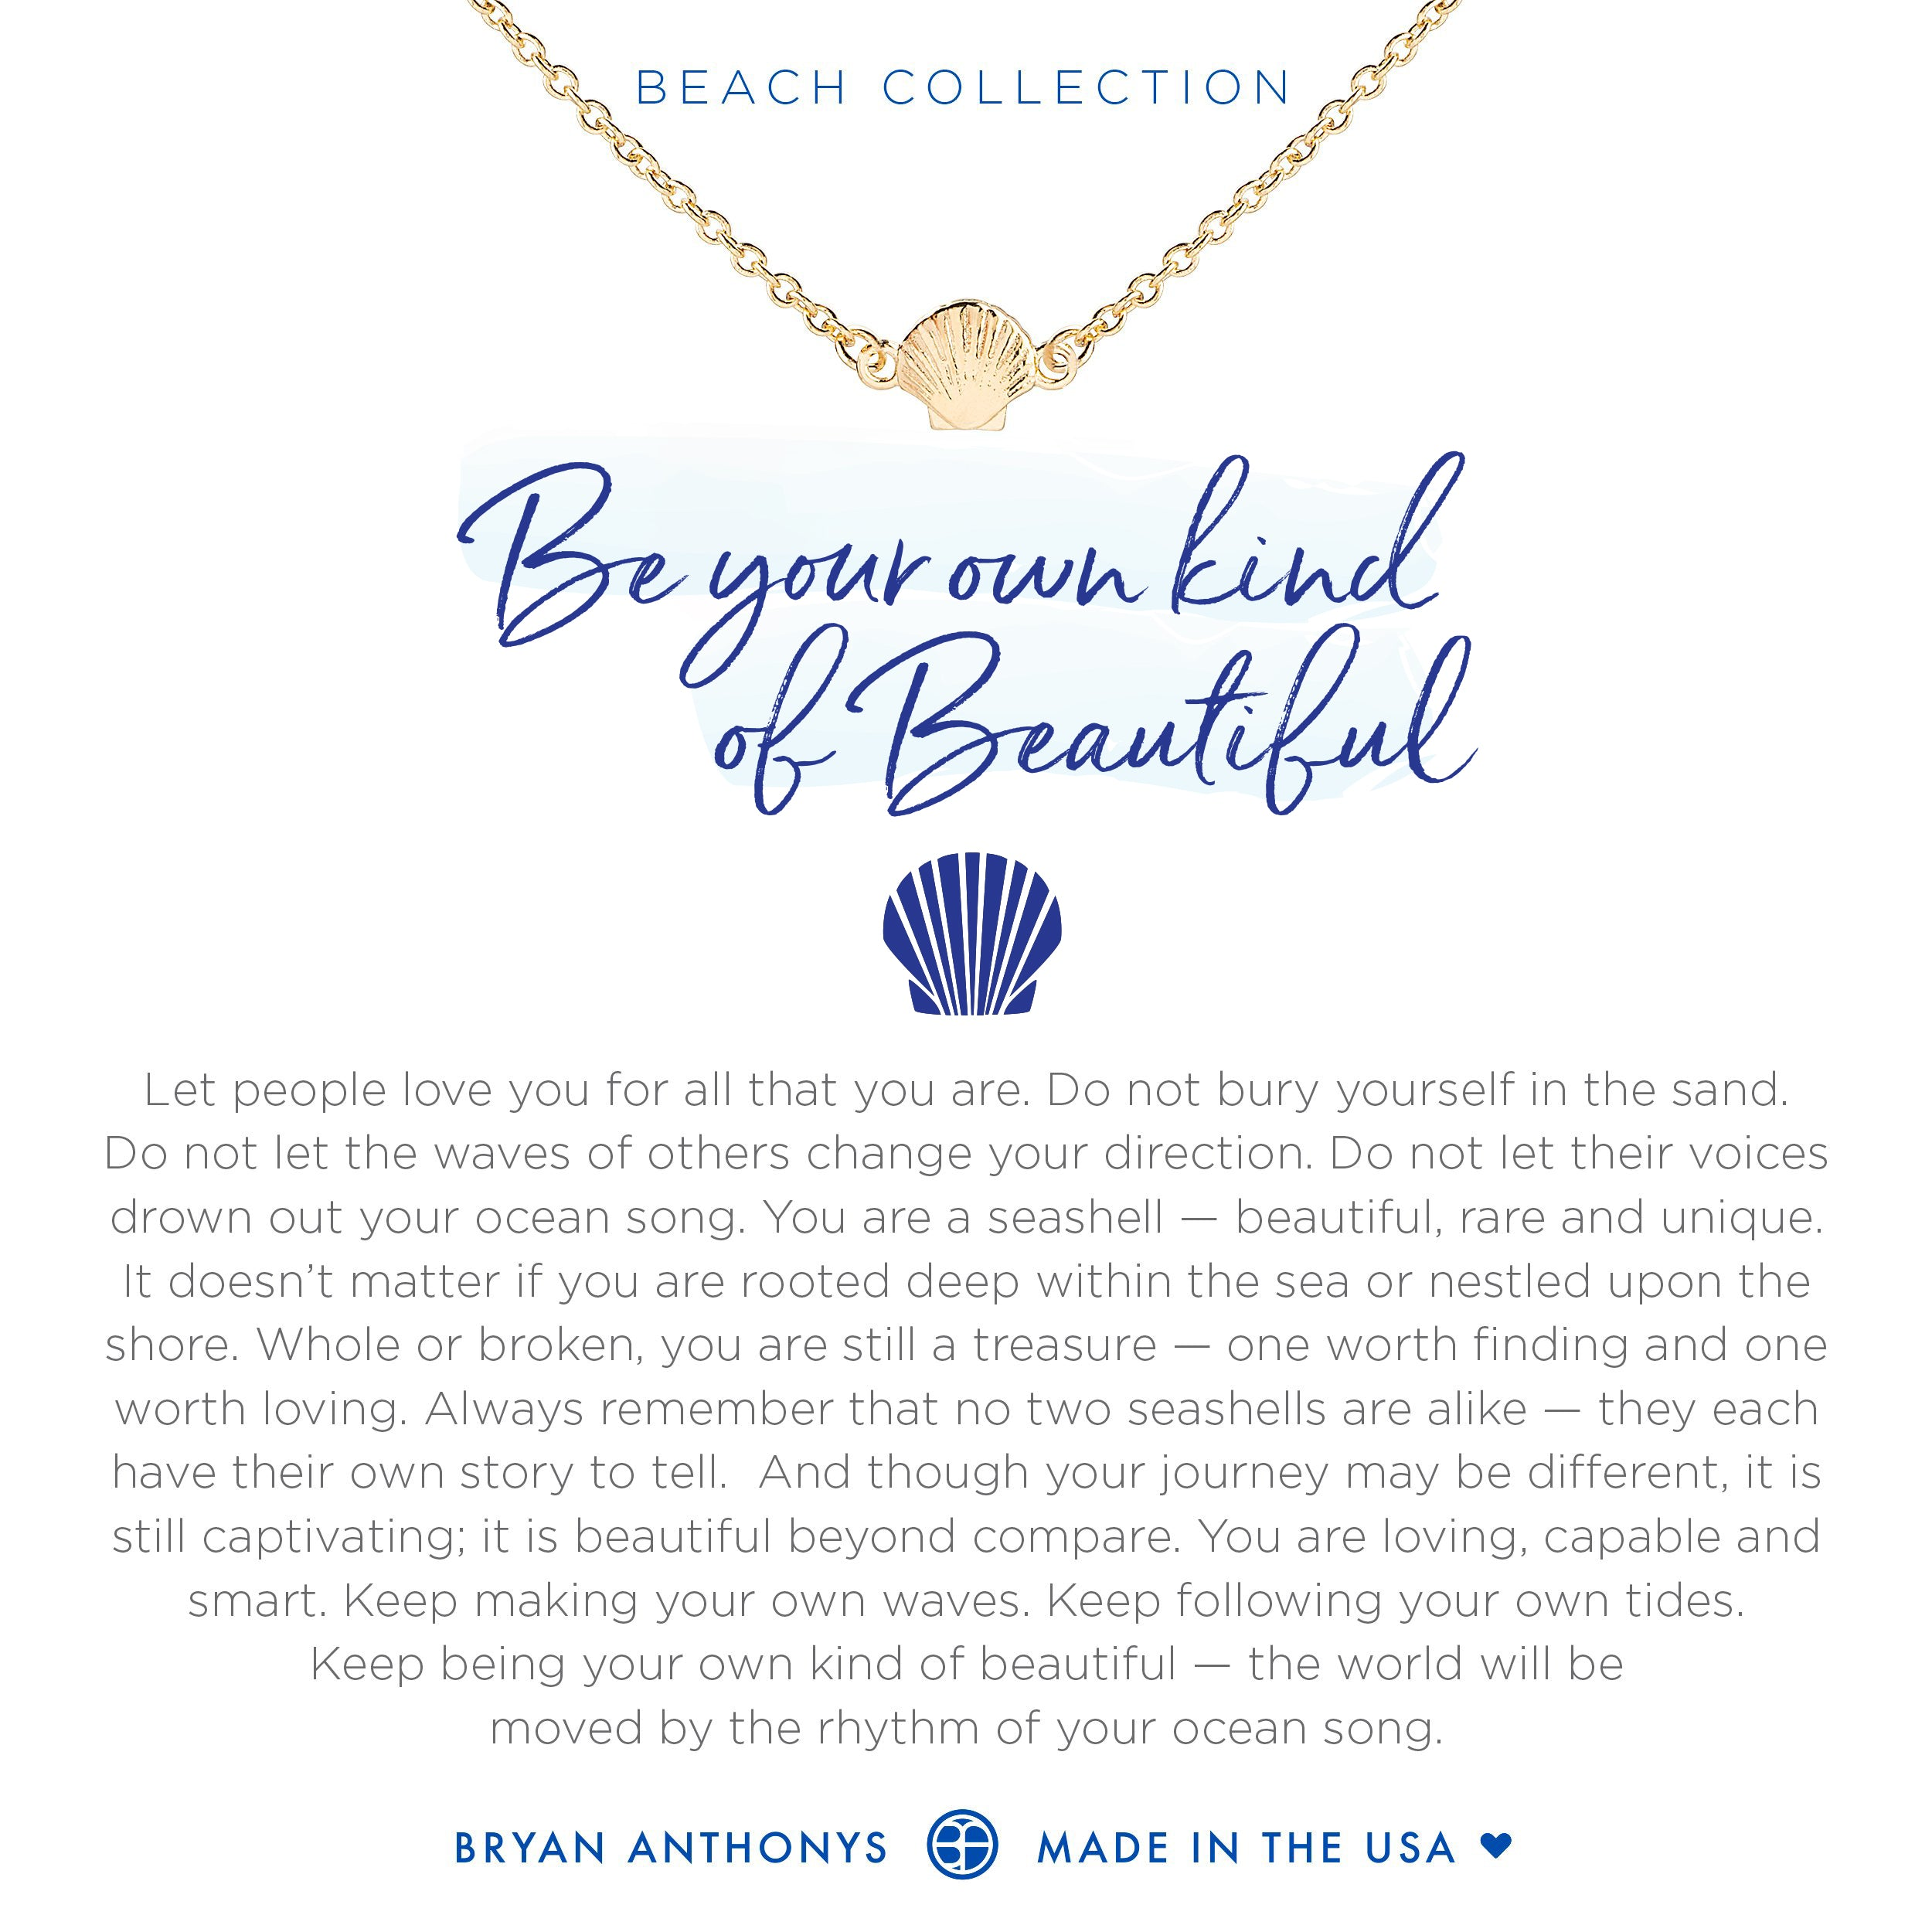 258193e54 Bryan Anthonys seashell anklet be your own kind of beautiful 14k gold